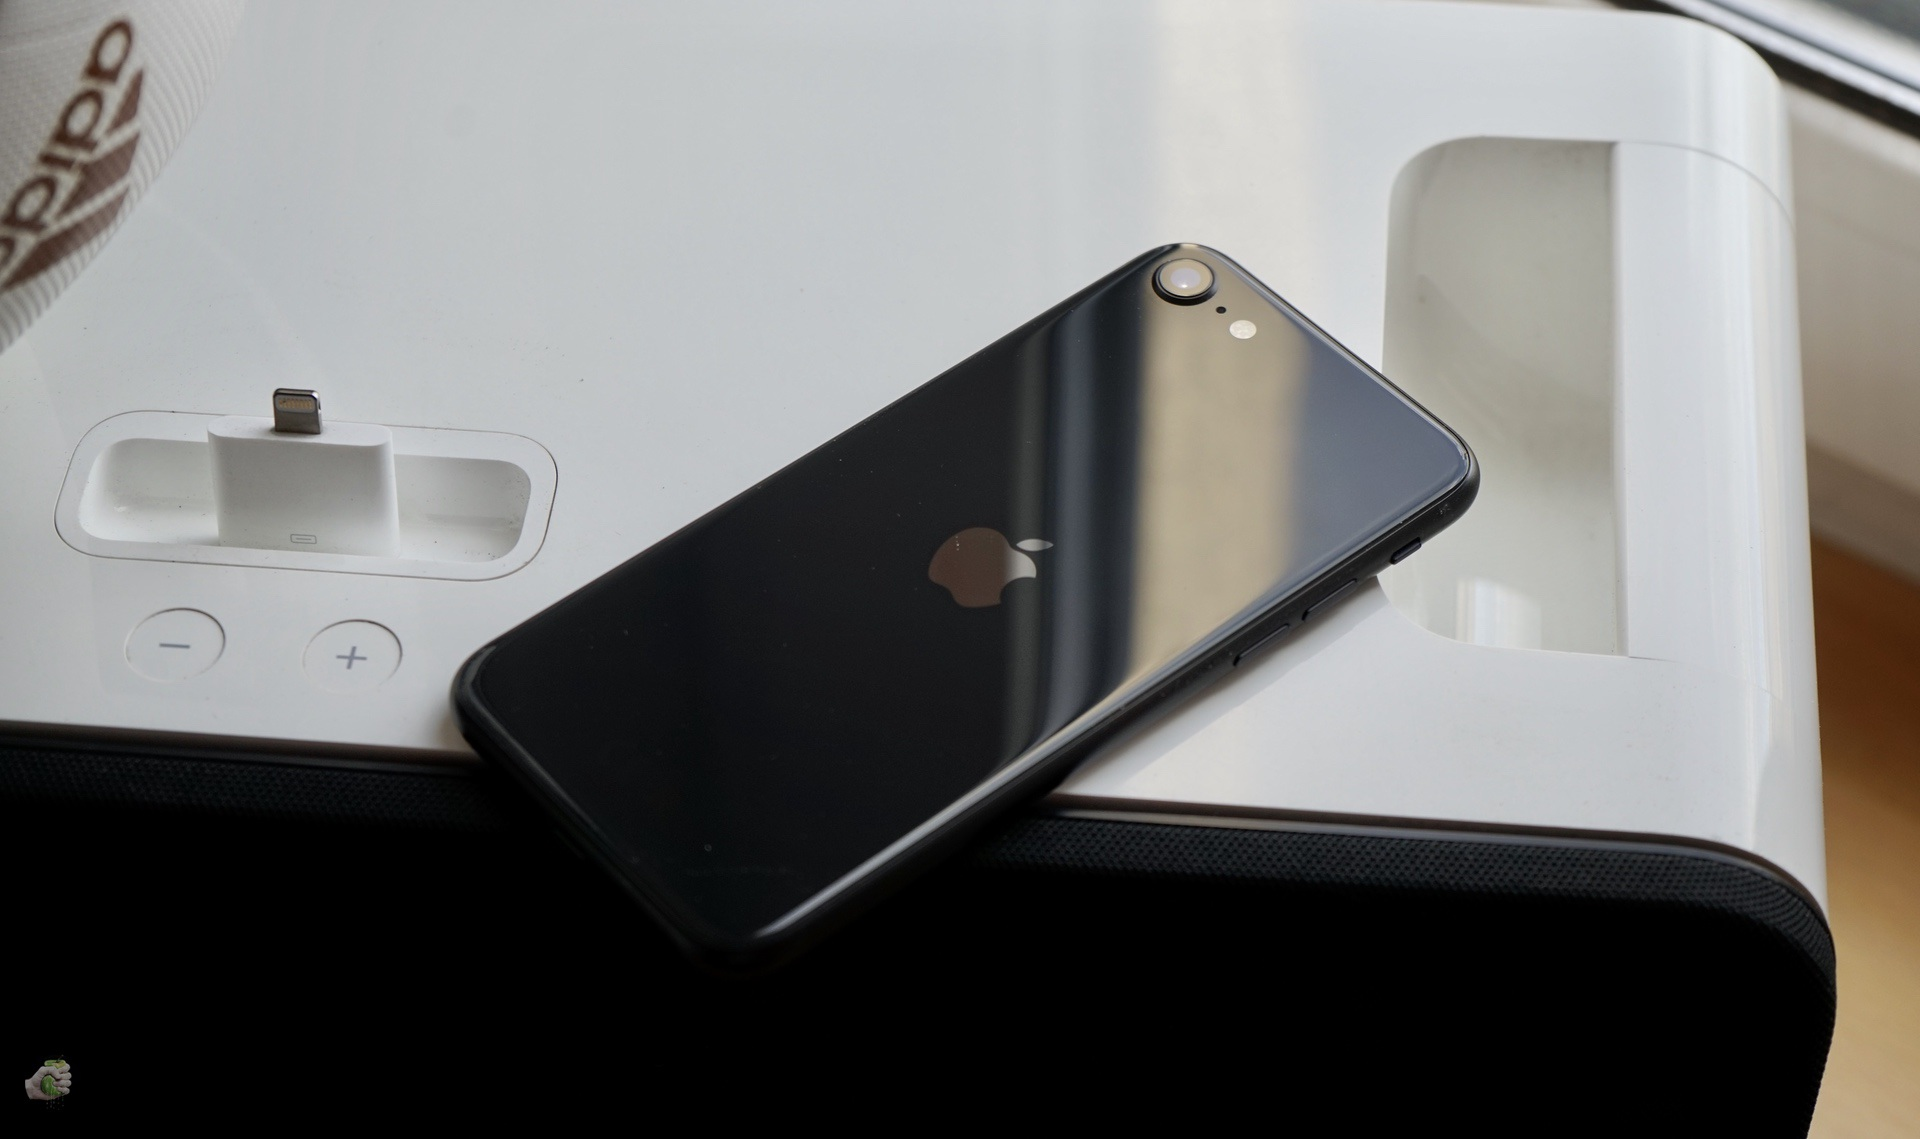 iPhone SE (2020) - First Look